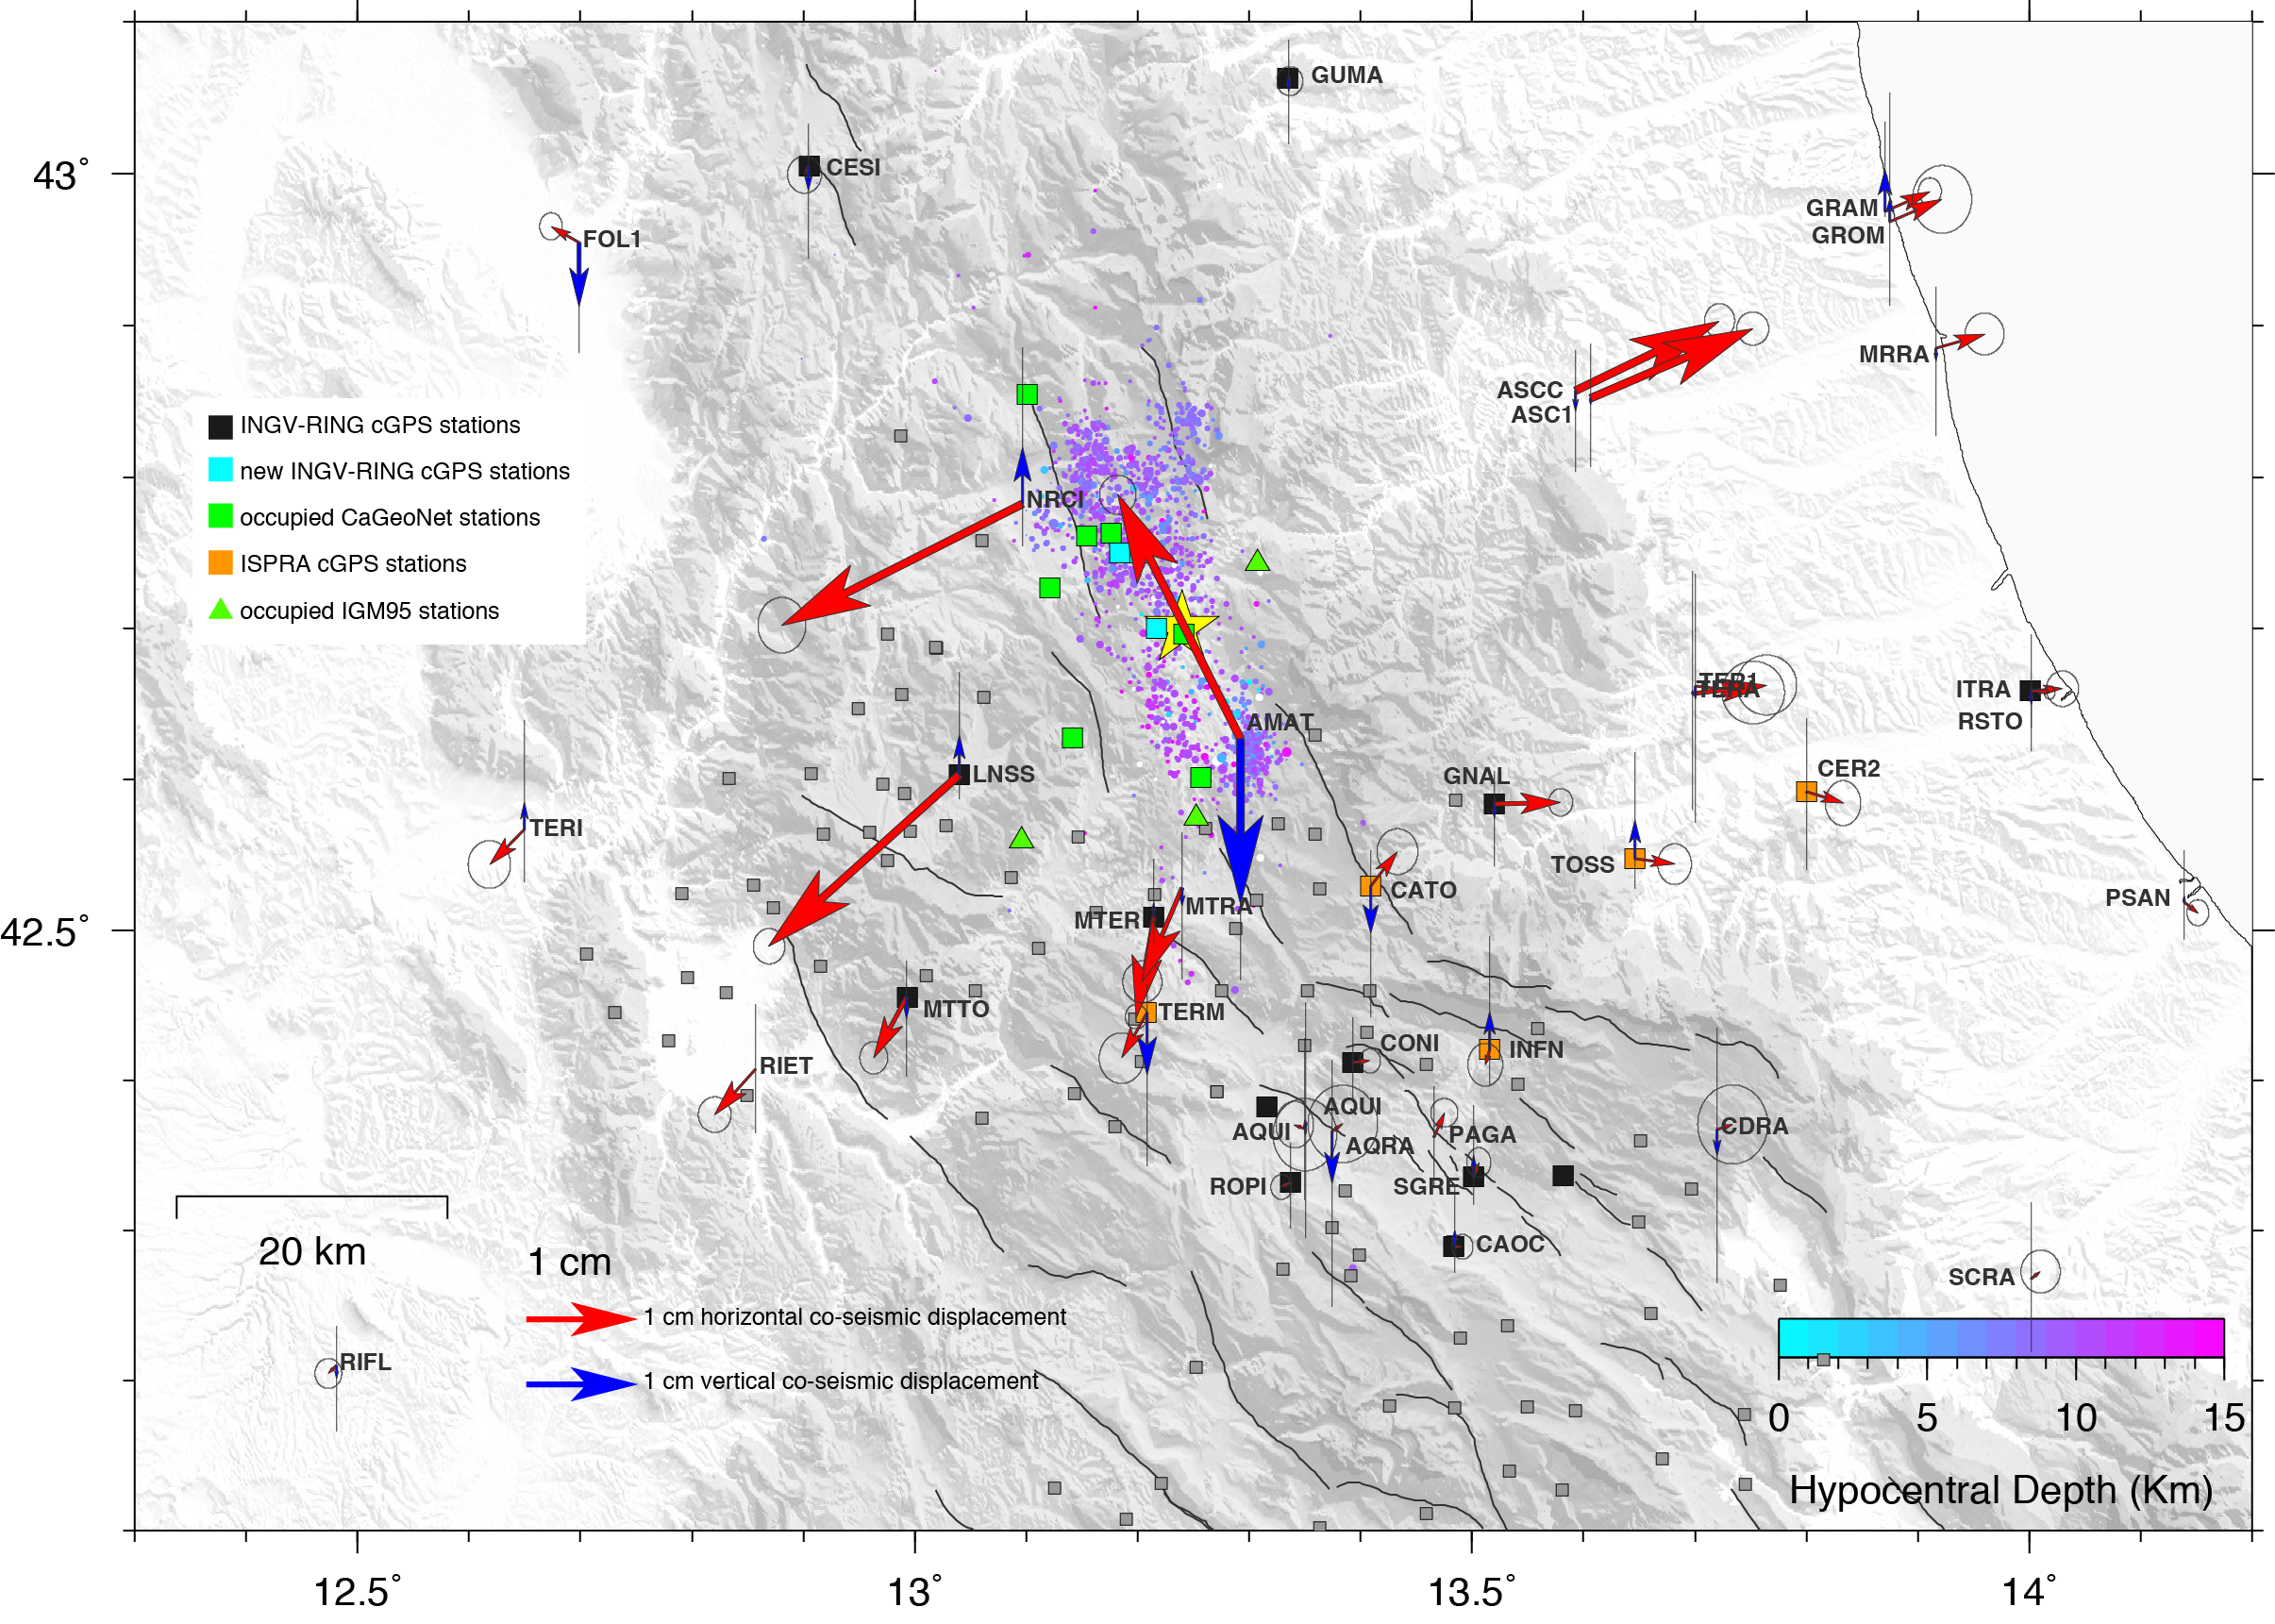 Co-seismic displacements for the August 24, 2016 Ml6, Amatrice